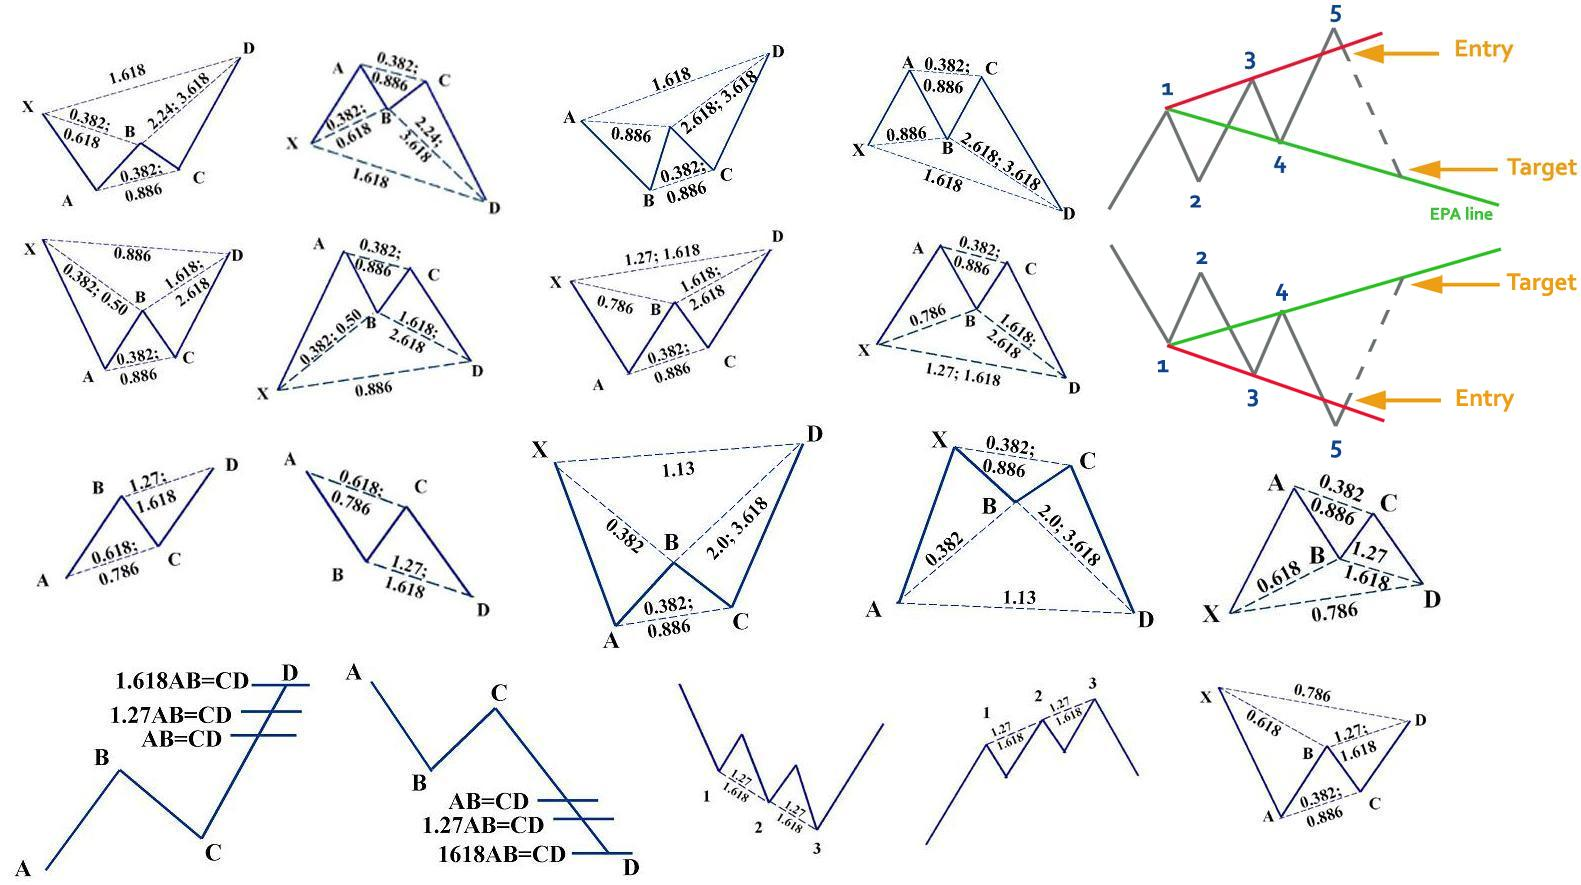 Harmonic Pattern Trading Strategy - Best Way to Use the Harmonic Patterns Indicator